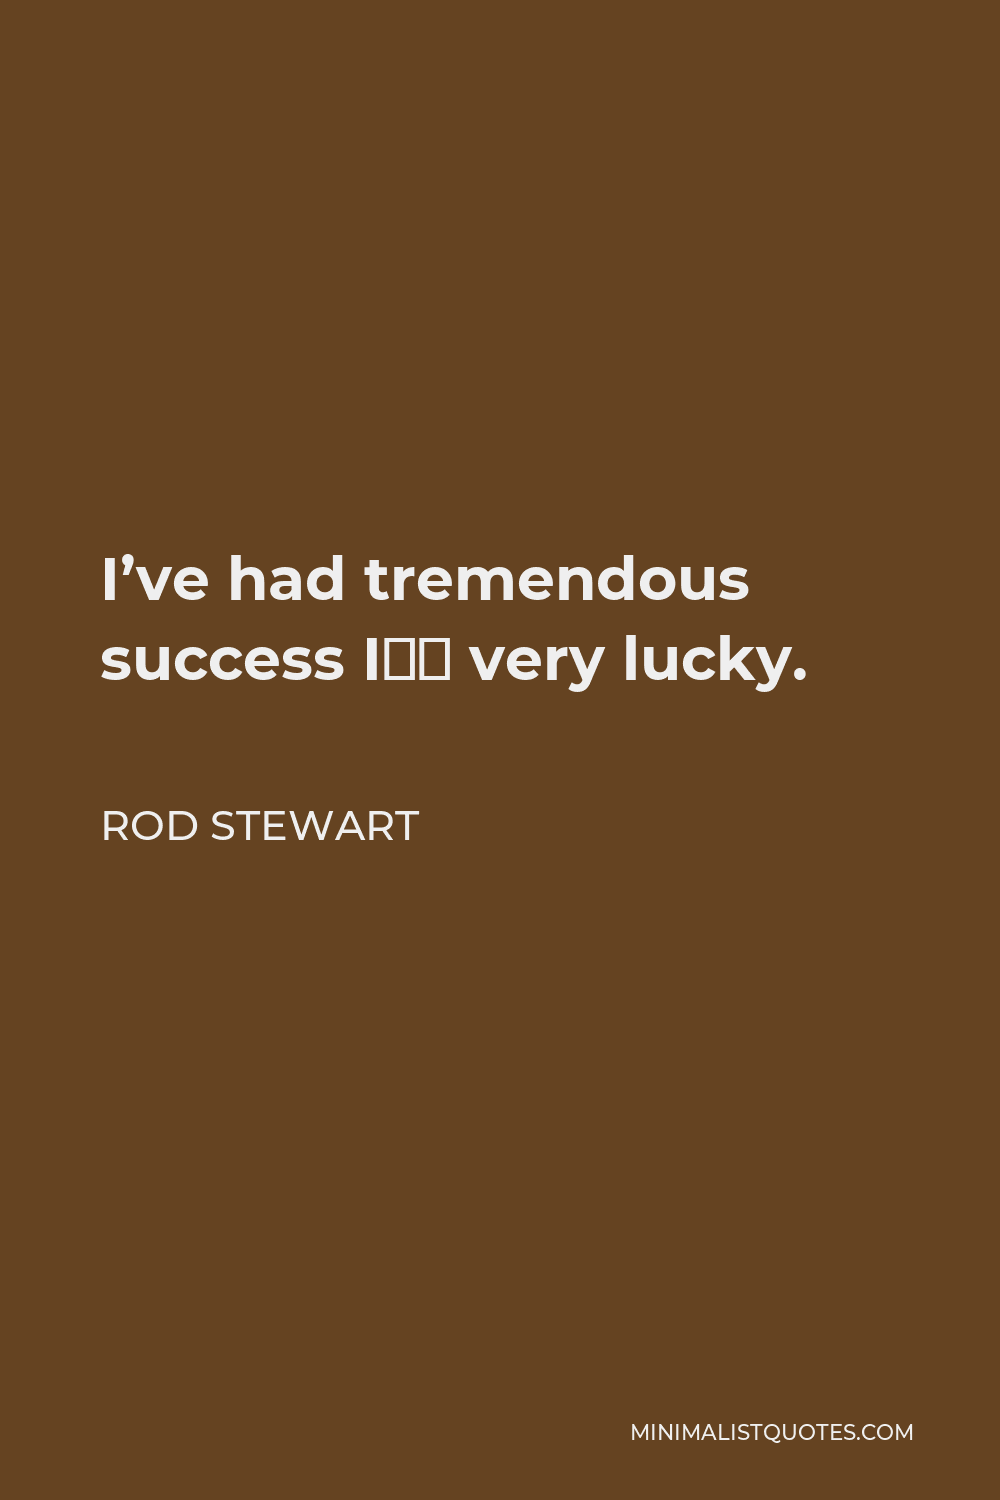 Rod Stewart Quote - I've had tremendous success I'm very lucky.